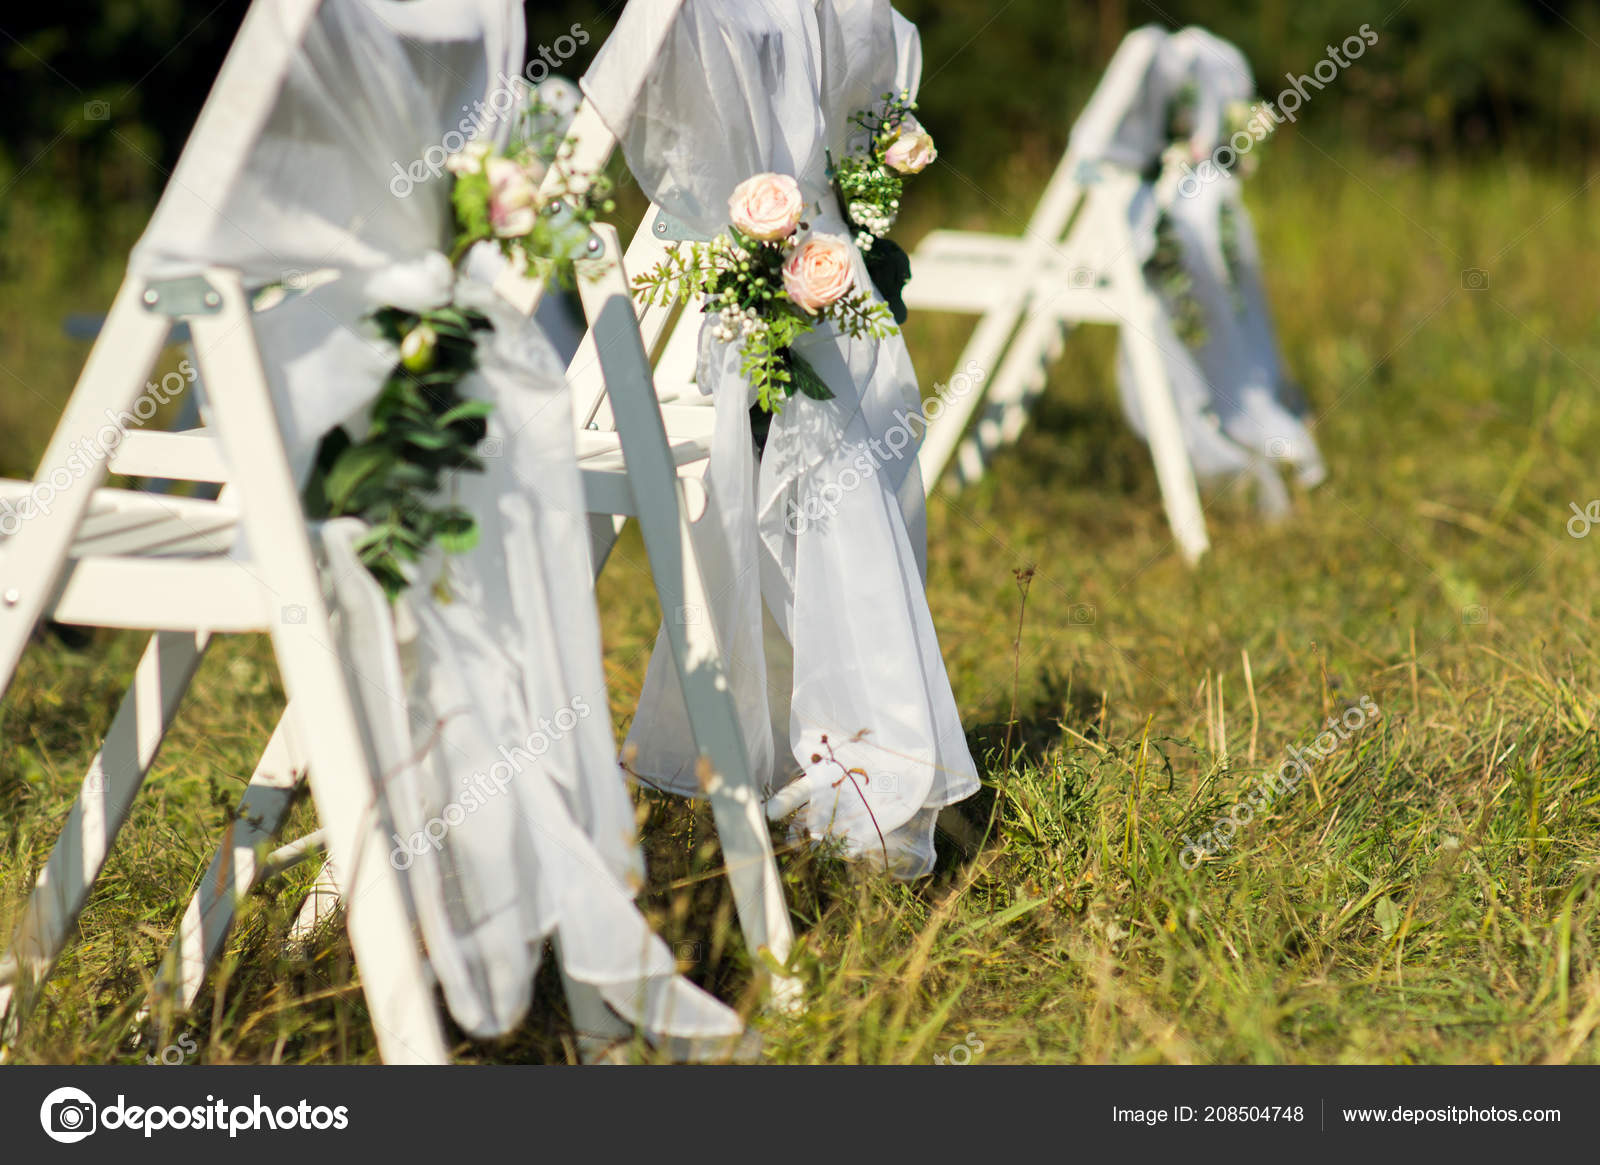 Chairs Guests Floral Wedding Decor Outdoor Wedding Ceremony